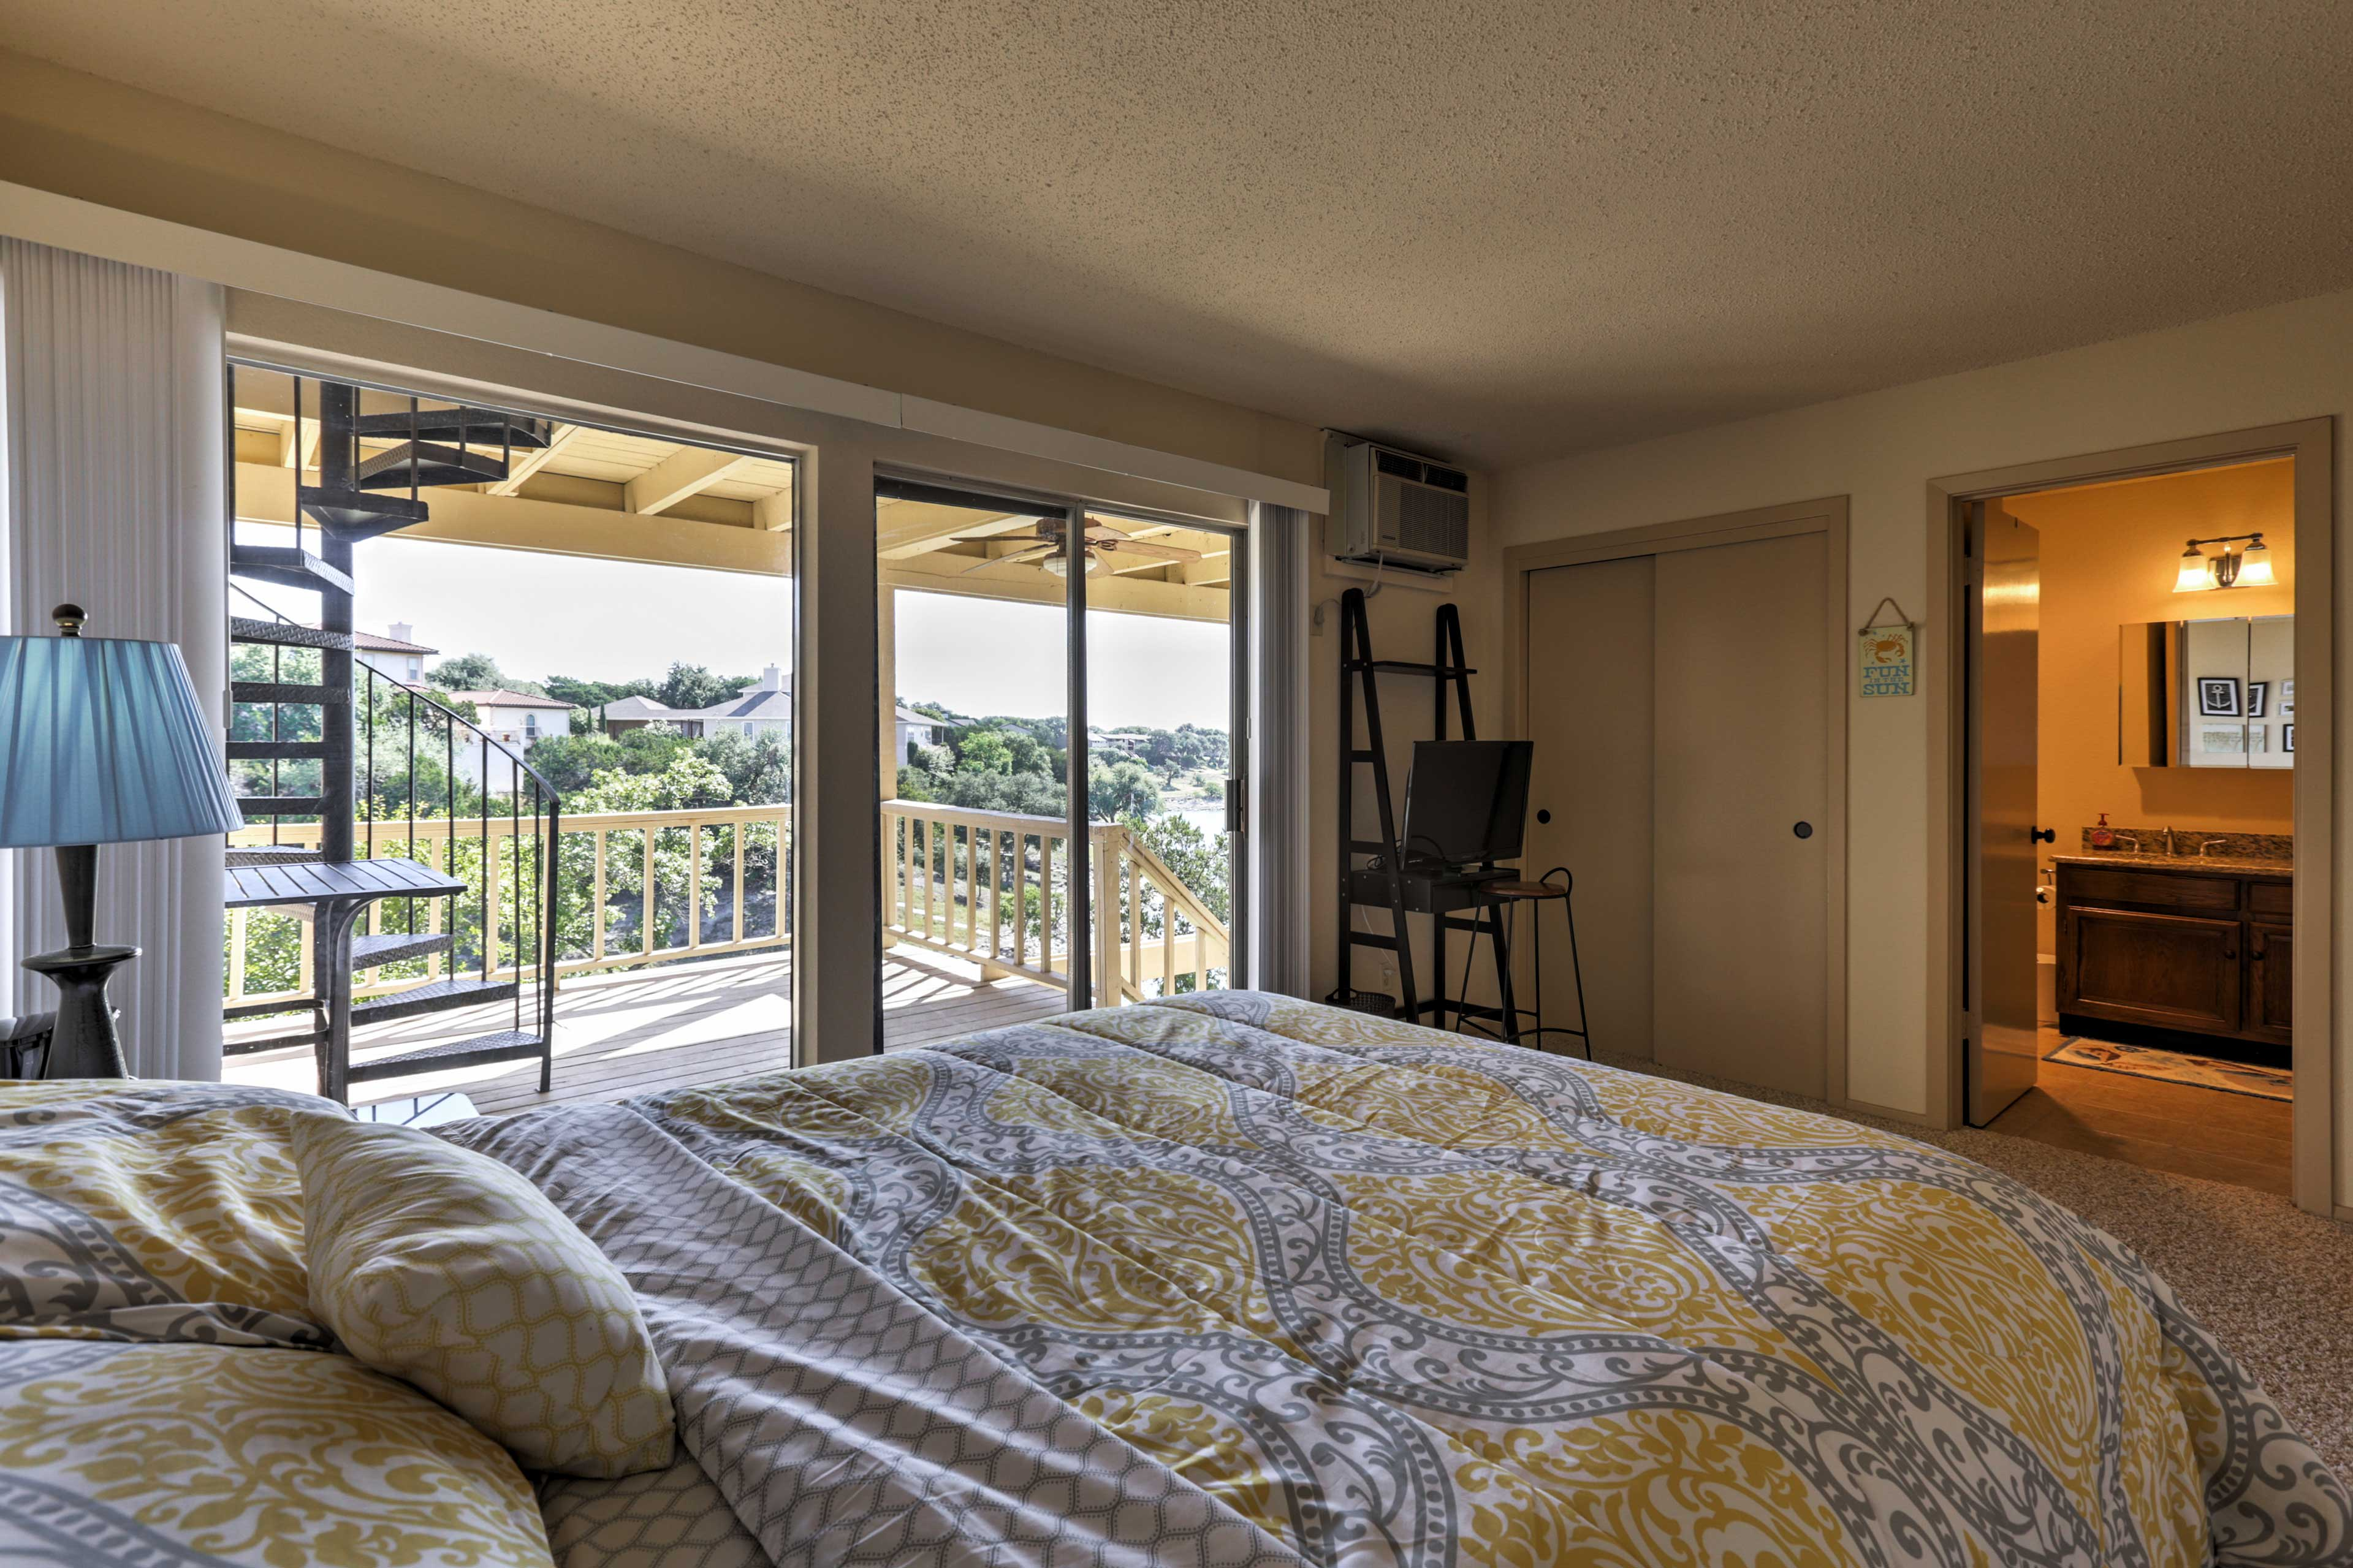 Enjoy the lake views when you wake up in the morning!